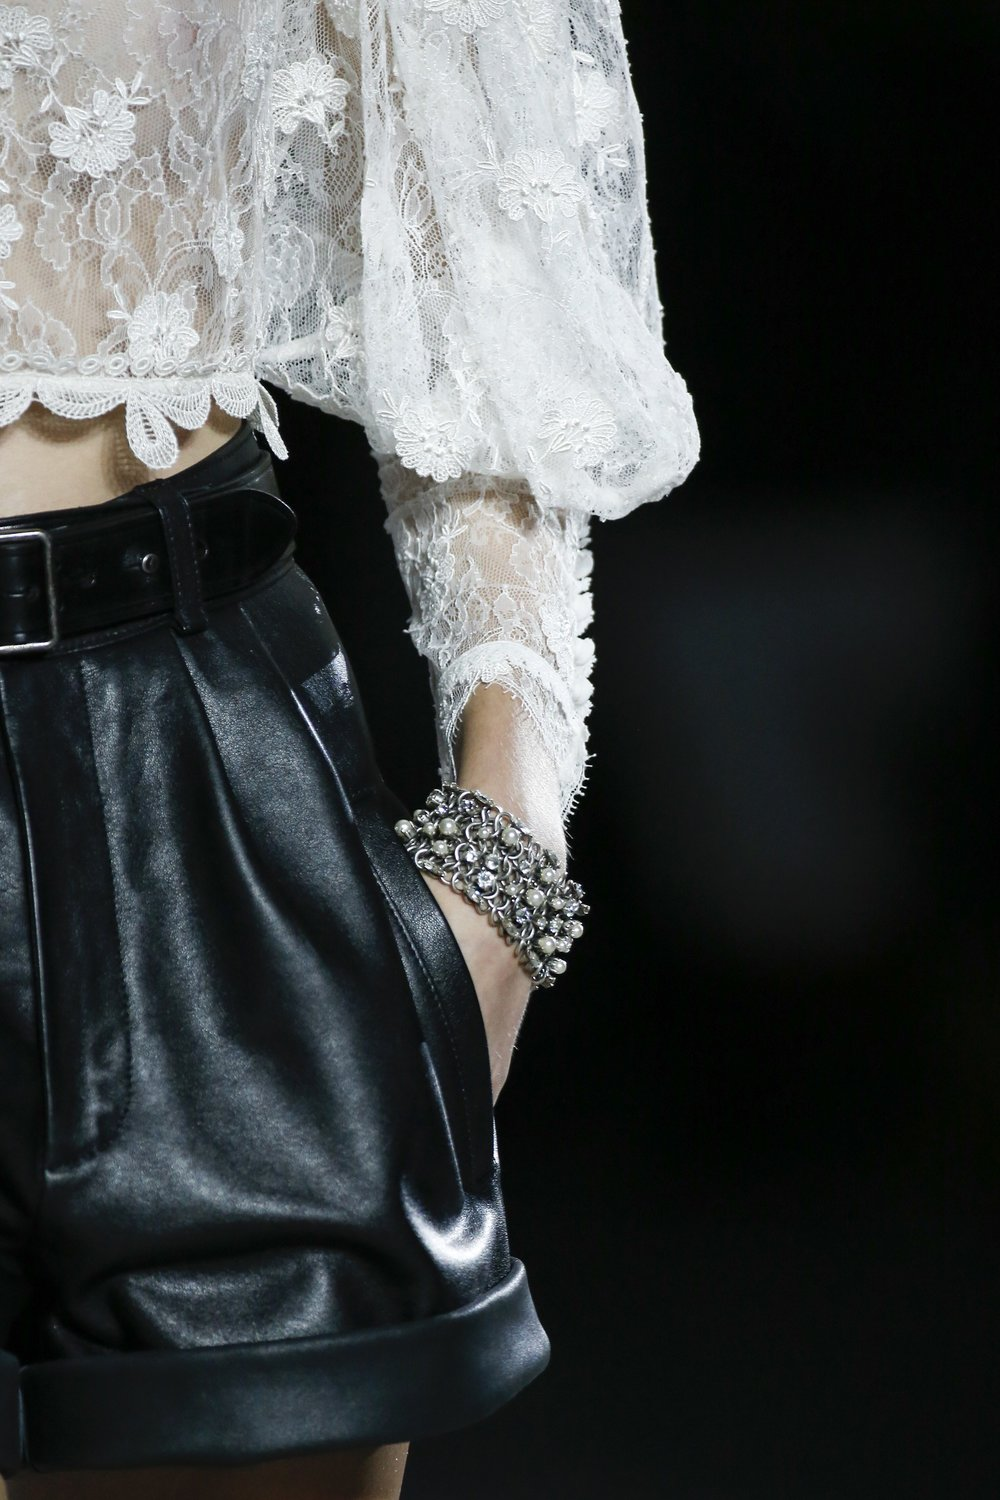 Saint Laurent's Lace - The Stunning Details from Spring 2018